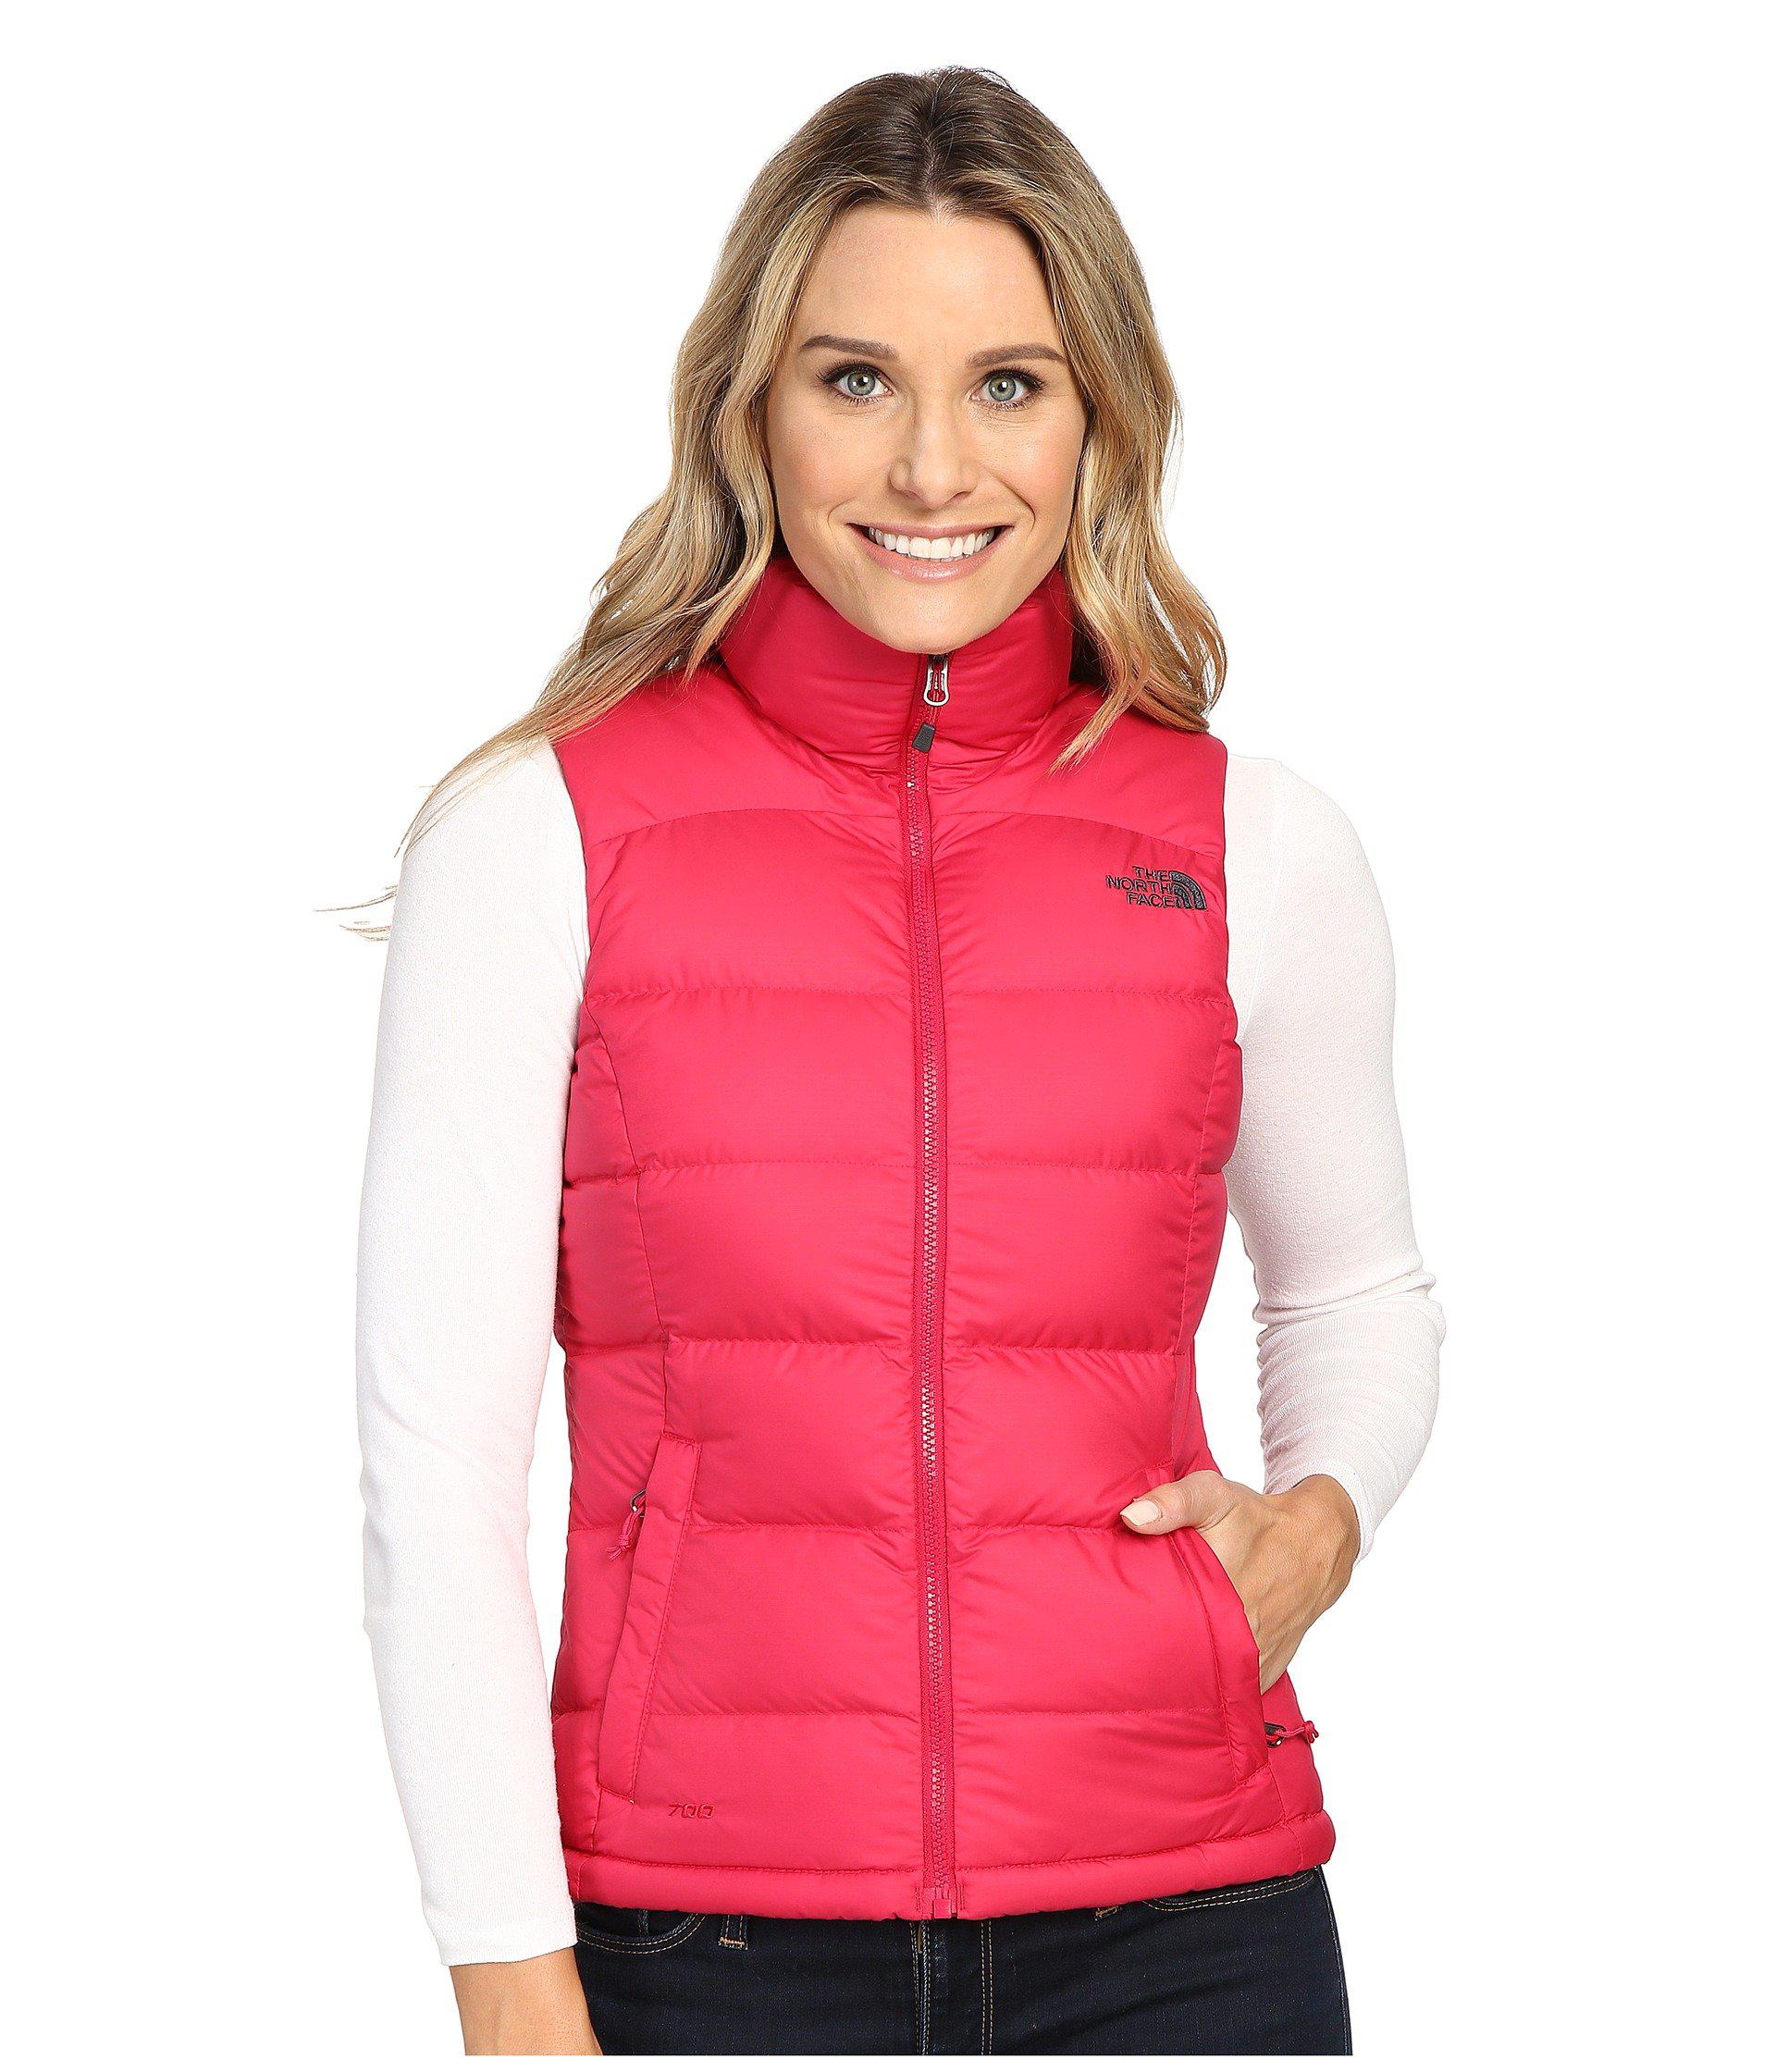 4c9a6549657f Lyst - The North Face Nuptse 2 Vest in Pink - Save 38%